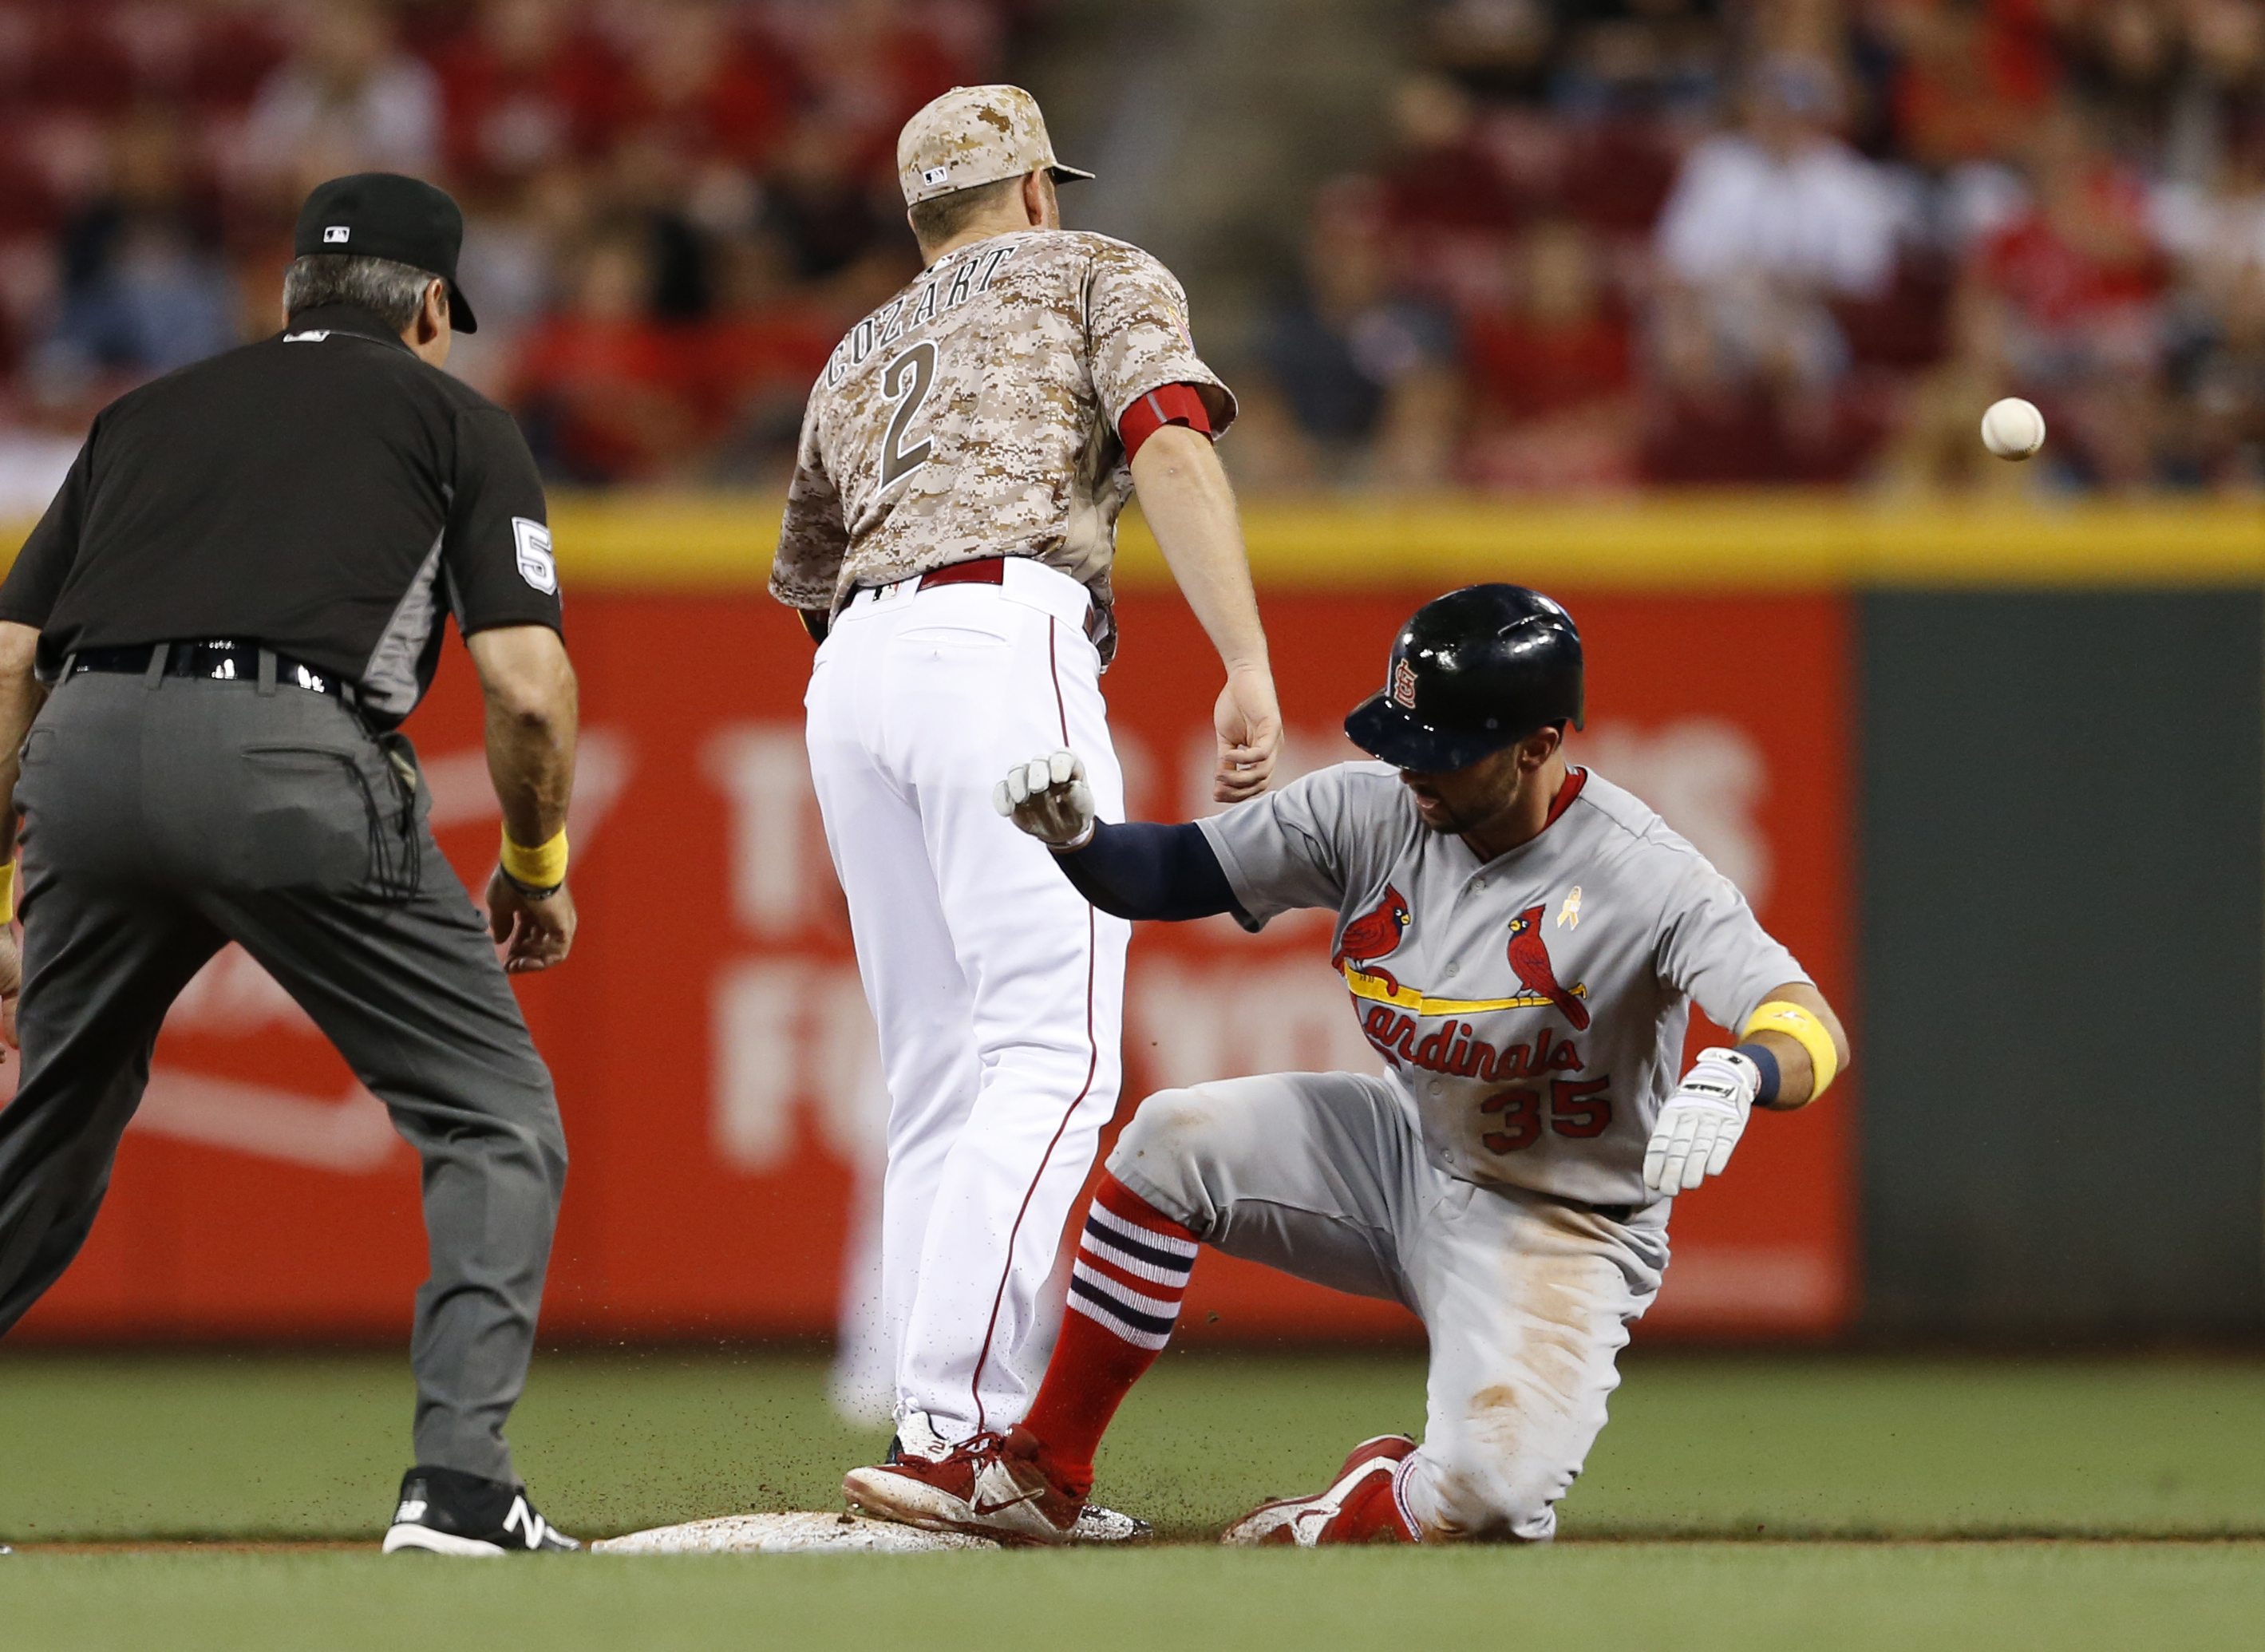 St. Louis Cardinals' Greg Garcia, right, slides into second base with a double as Cincinnati Reds shortstop Zack Cozart (2) waits for the throw during the fifth inning of a baseball game Friday, Sept. 2, 2016, in Cincinnati. (AP Photo/Gary Landers)